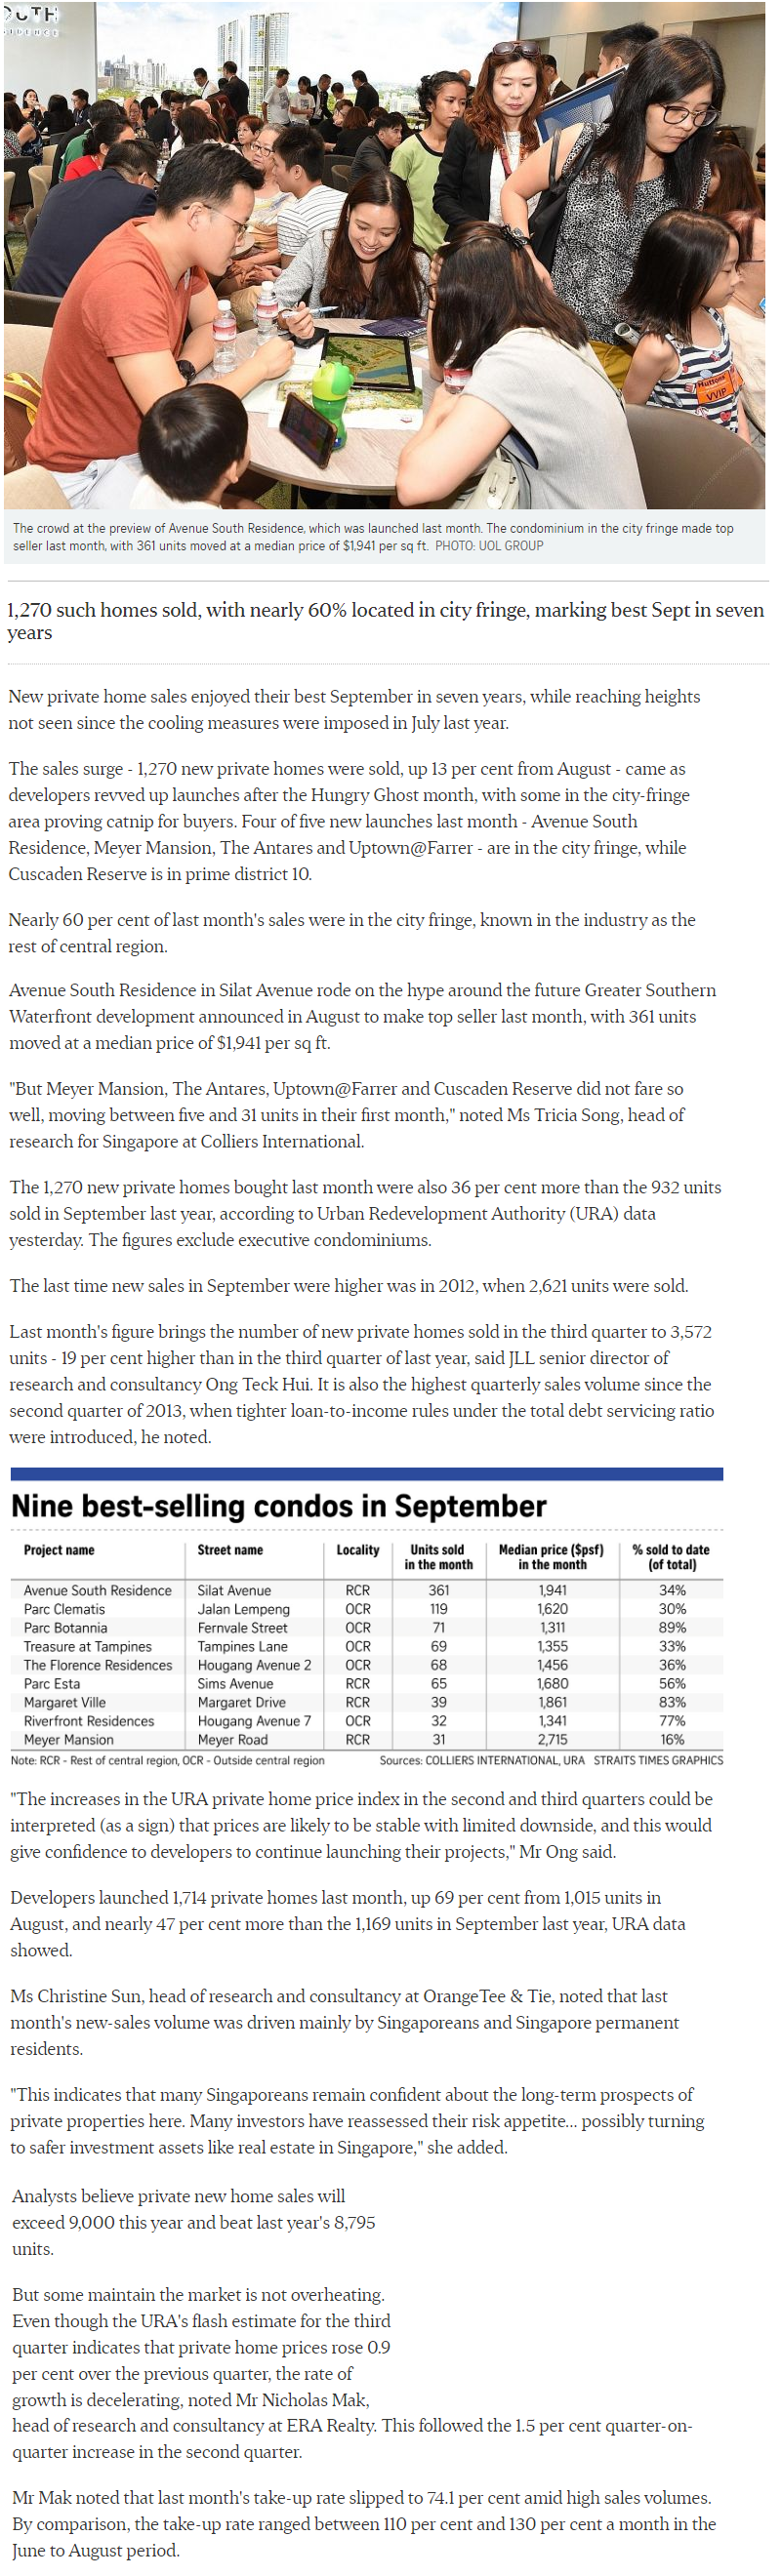 Midtown Modern - New private Home Sales Hit A Hight In September